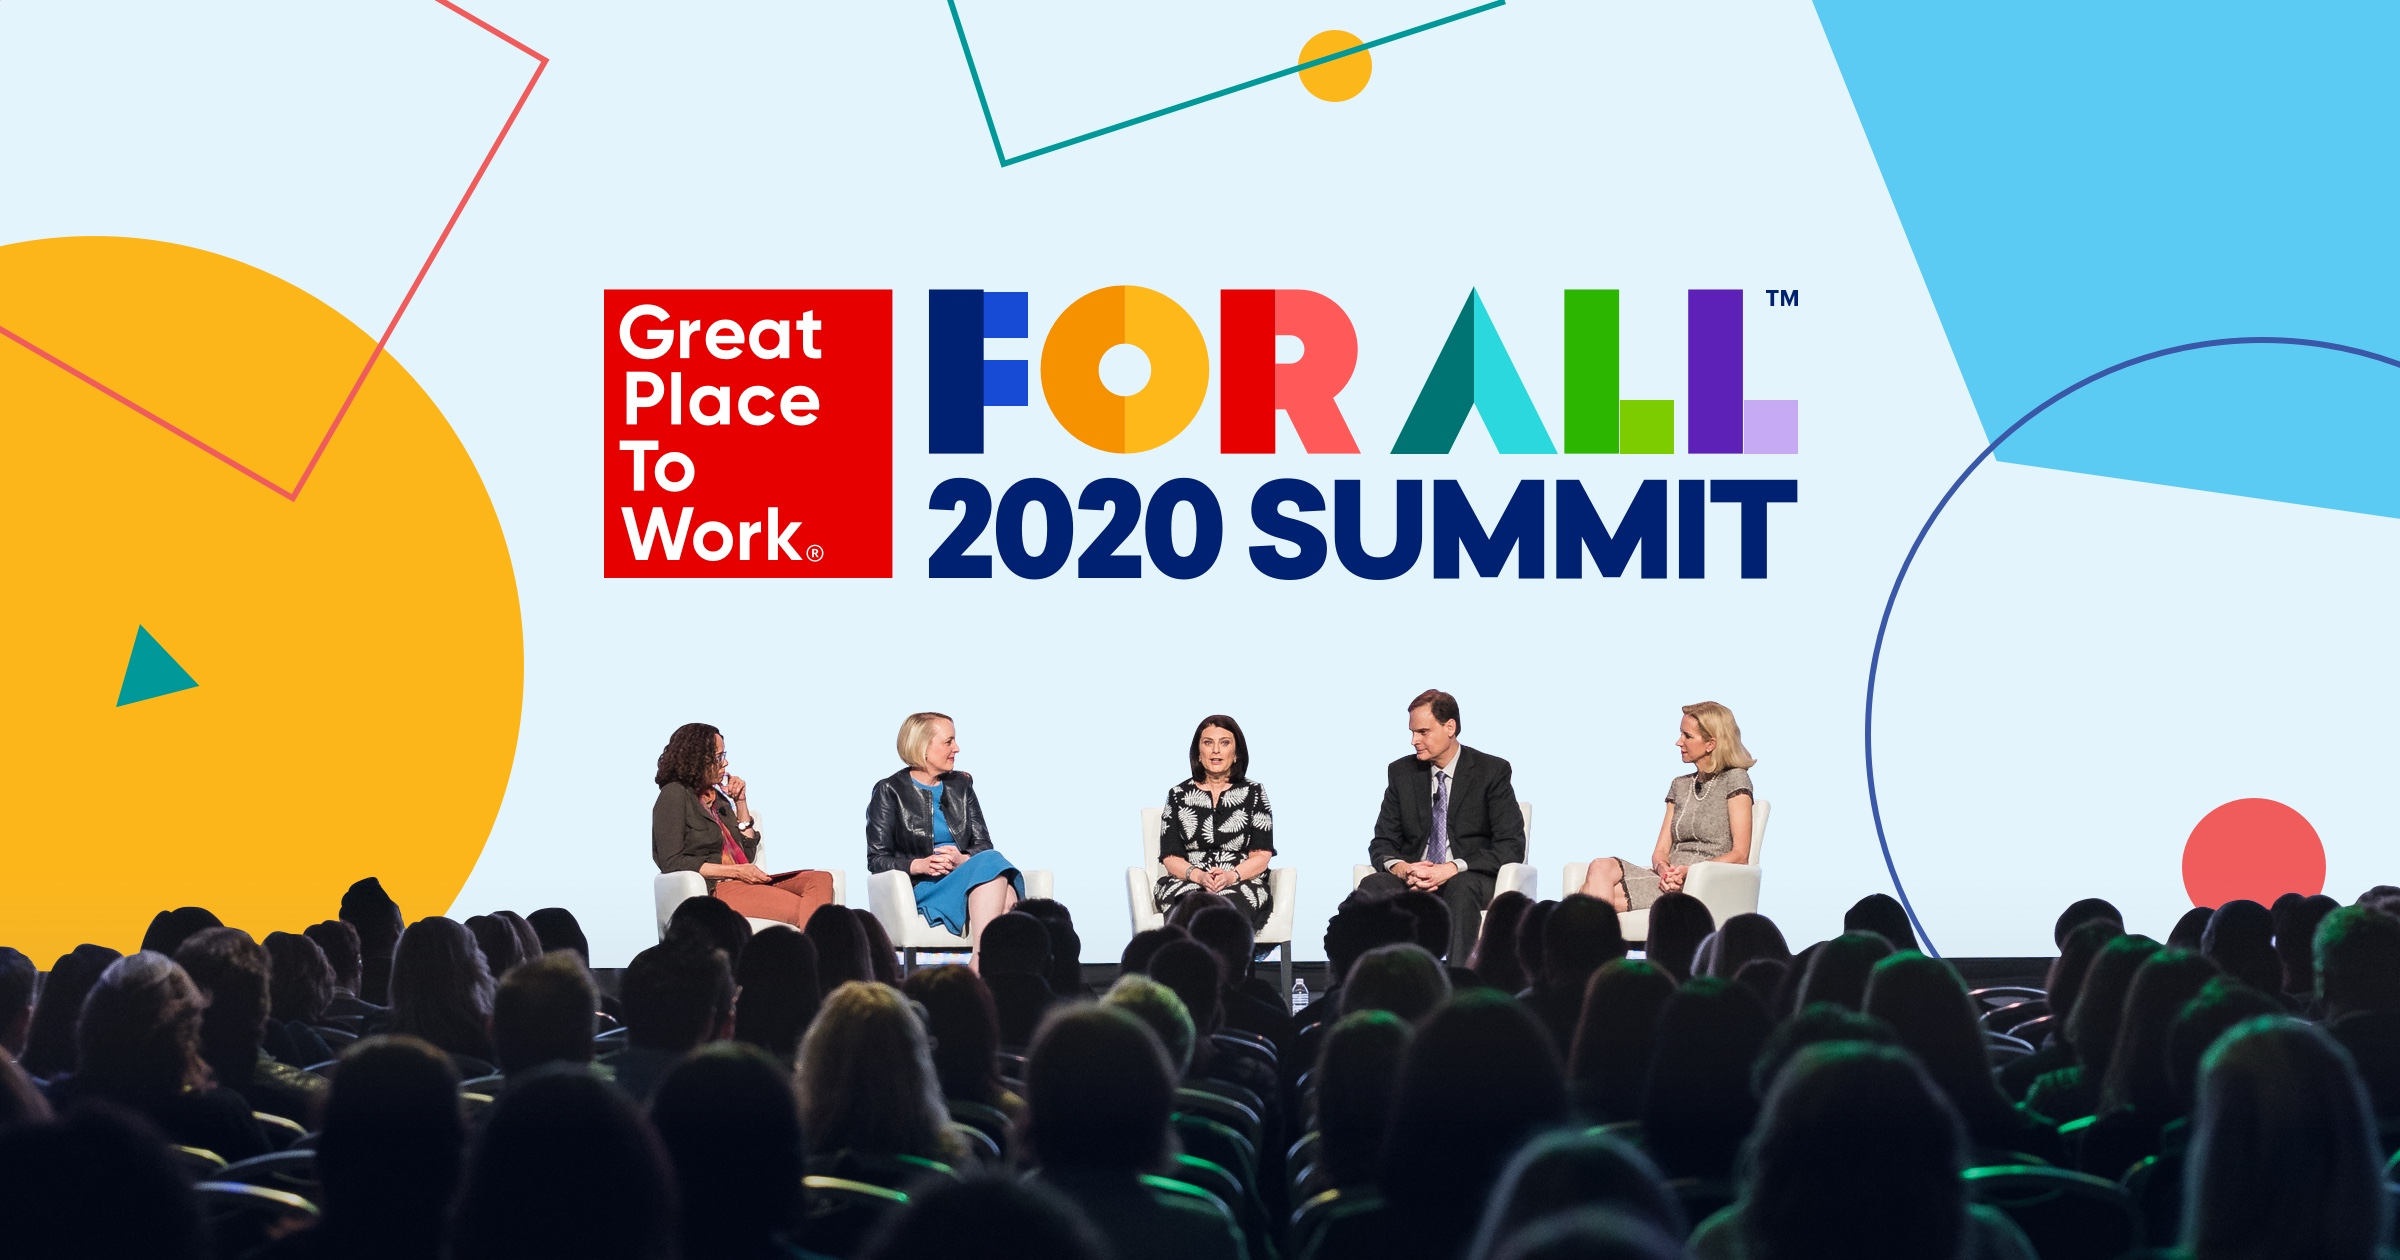 For All Summit - Great Place To Work United States